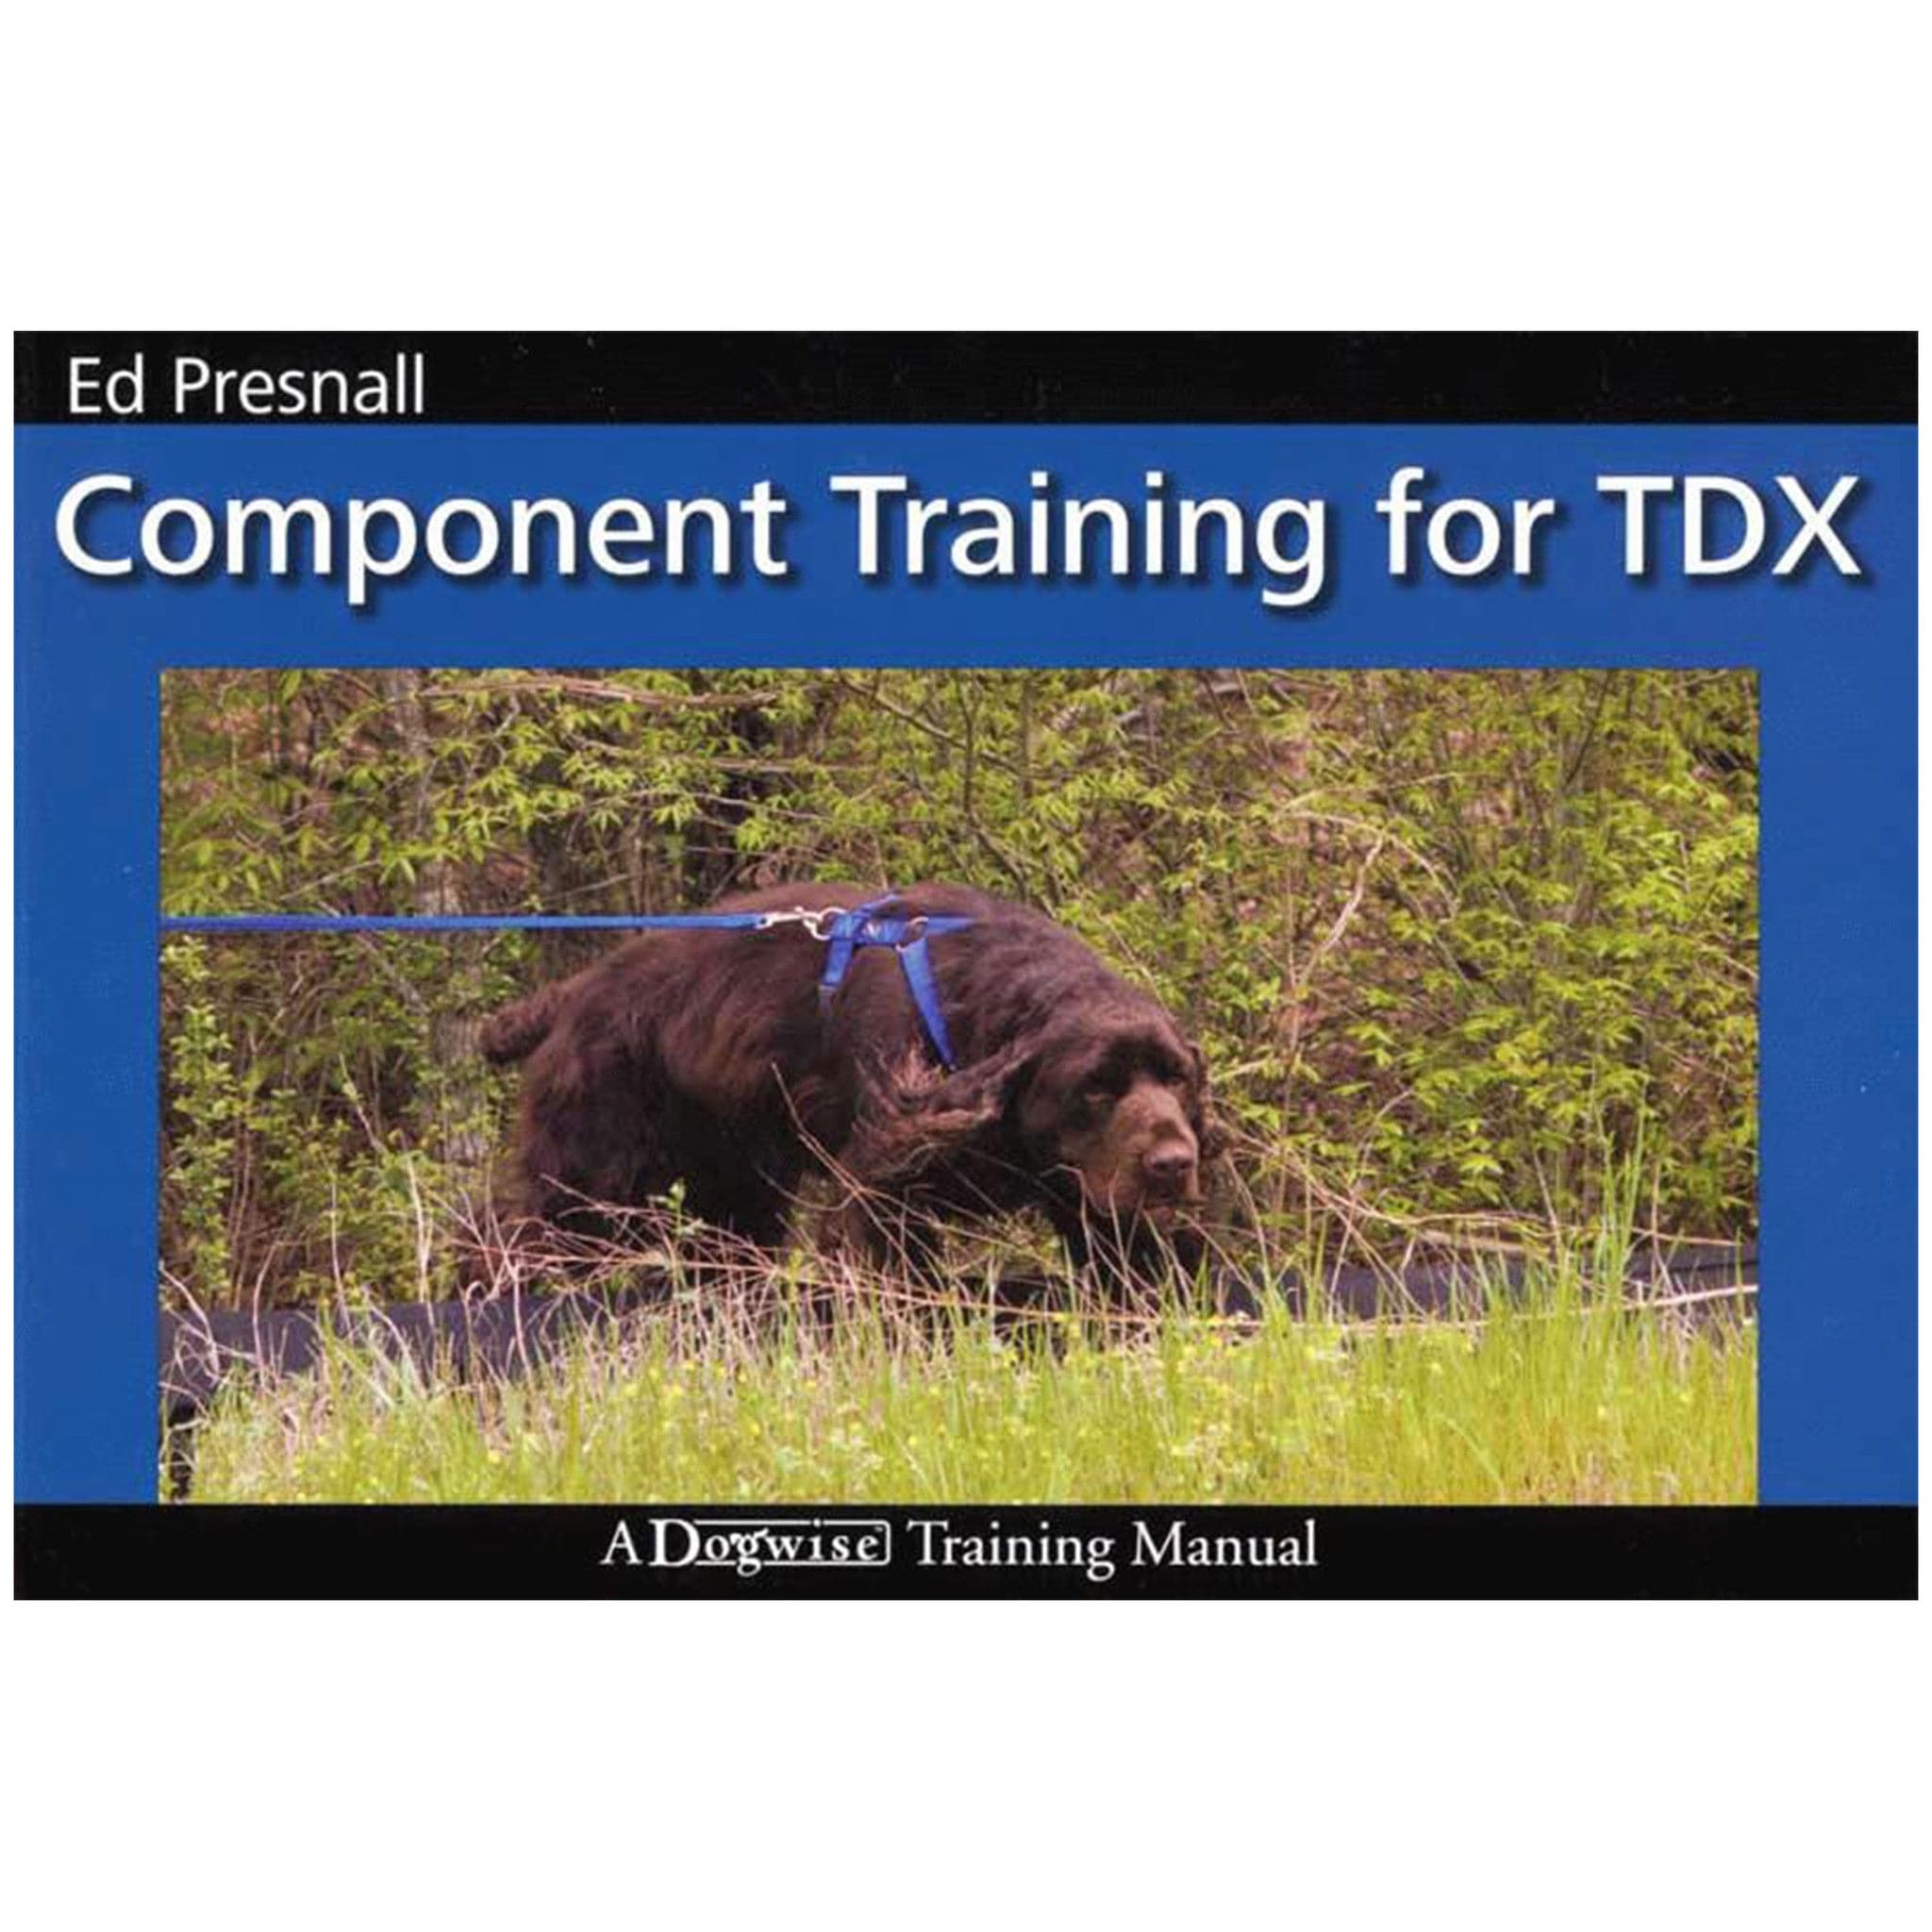 Component Training for TDX